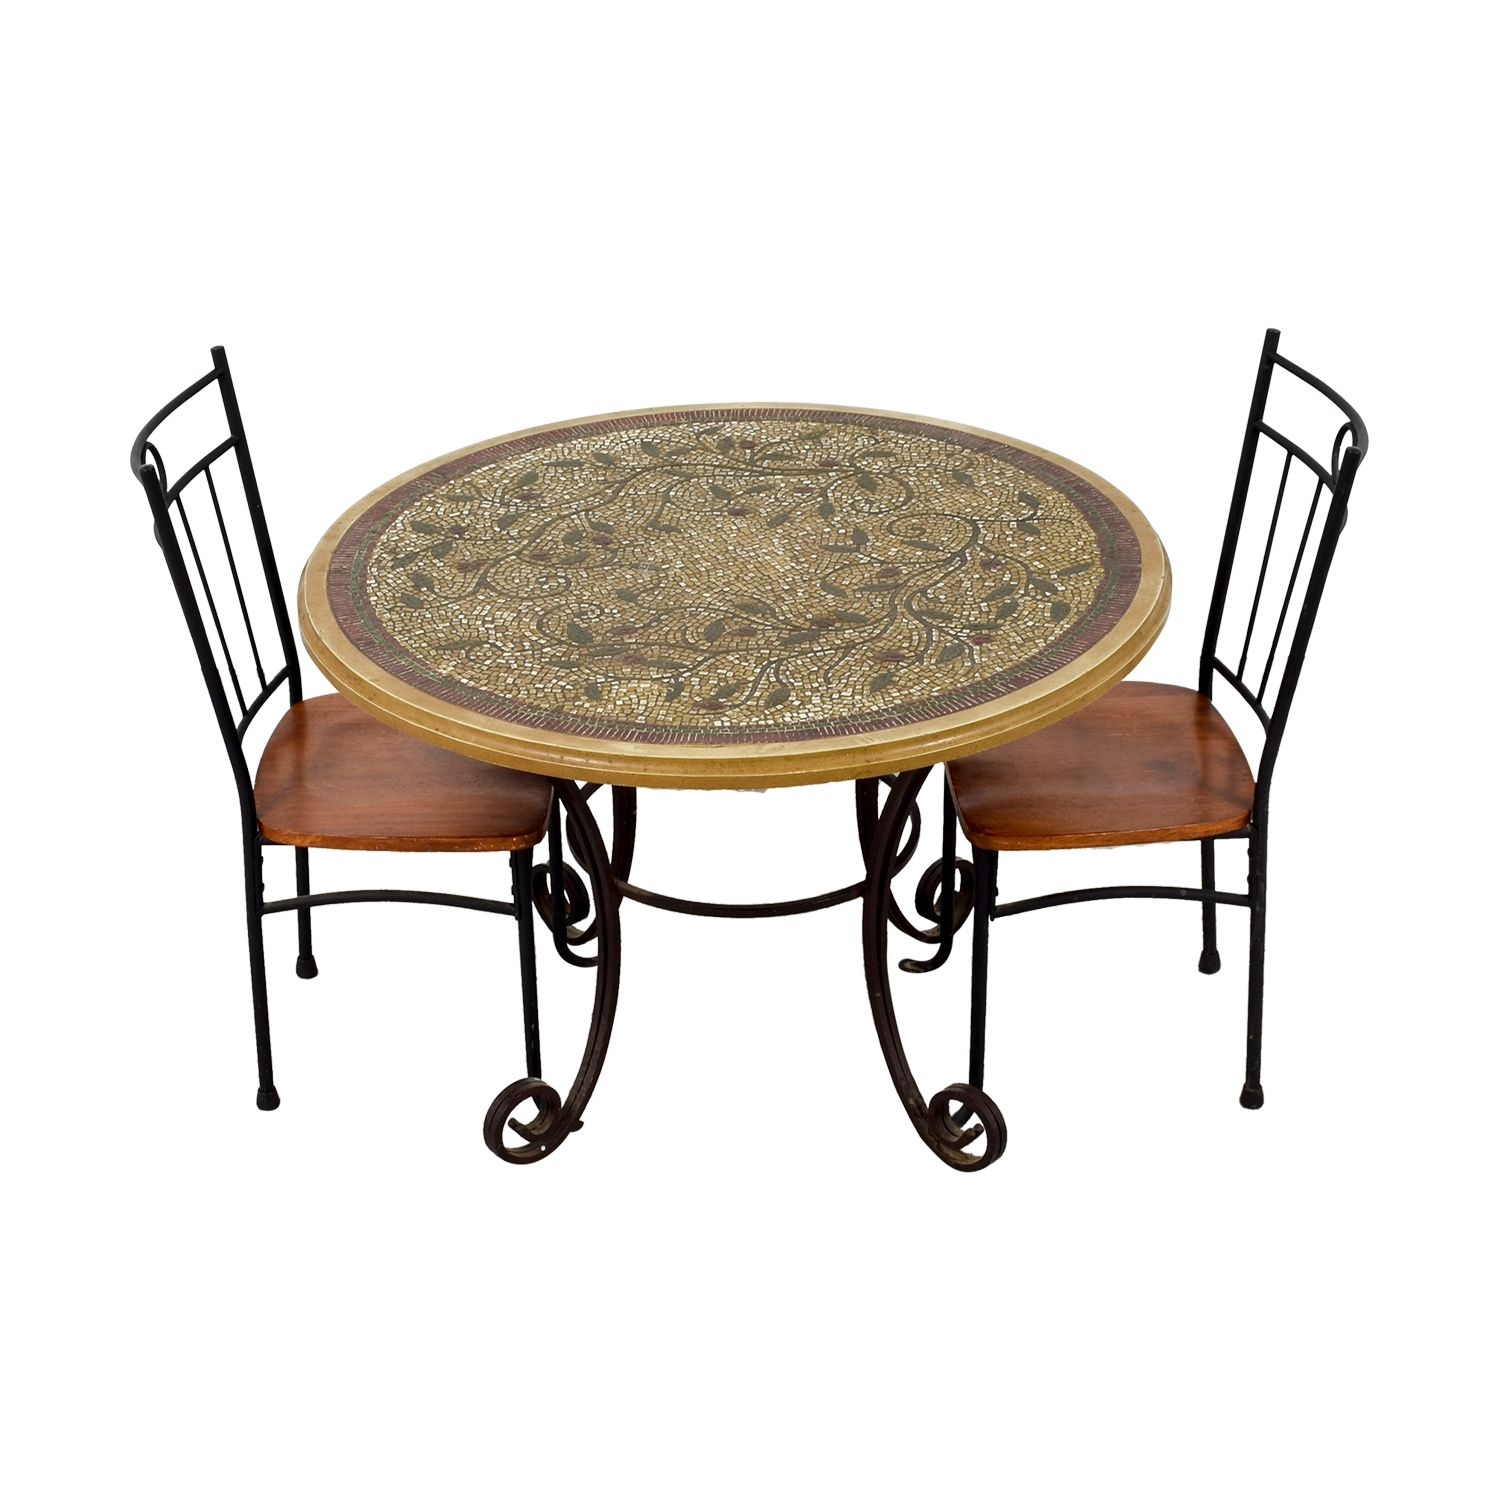 [%81% Off – Mosaic Dining Set / Tables With Well Known Mosaic Dining Tables For Sale|Mosaic Dining Tables For Sale Regarding Popular 81% Off – Mosaic Dining Set / Tables|Well Known Mosaic Dining Tables For Sale Within 81% Off – Mosaic Dining Set / Tables|Most Current 81% Off – Mosaic Dining Set / Tables Pertaining To Mosaic Dining Tables For Sale%] (View 2 of 25)